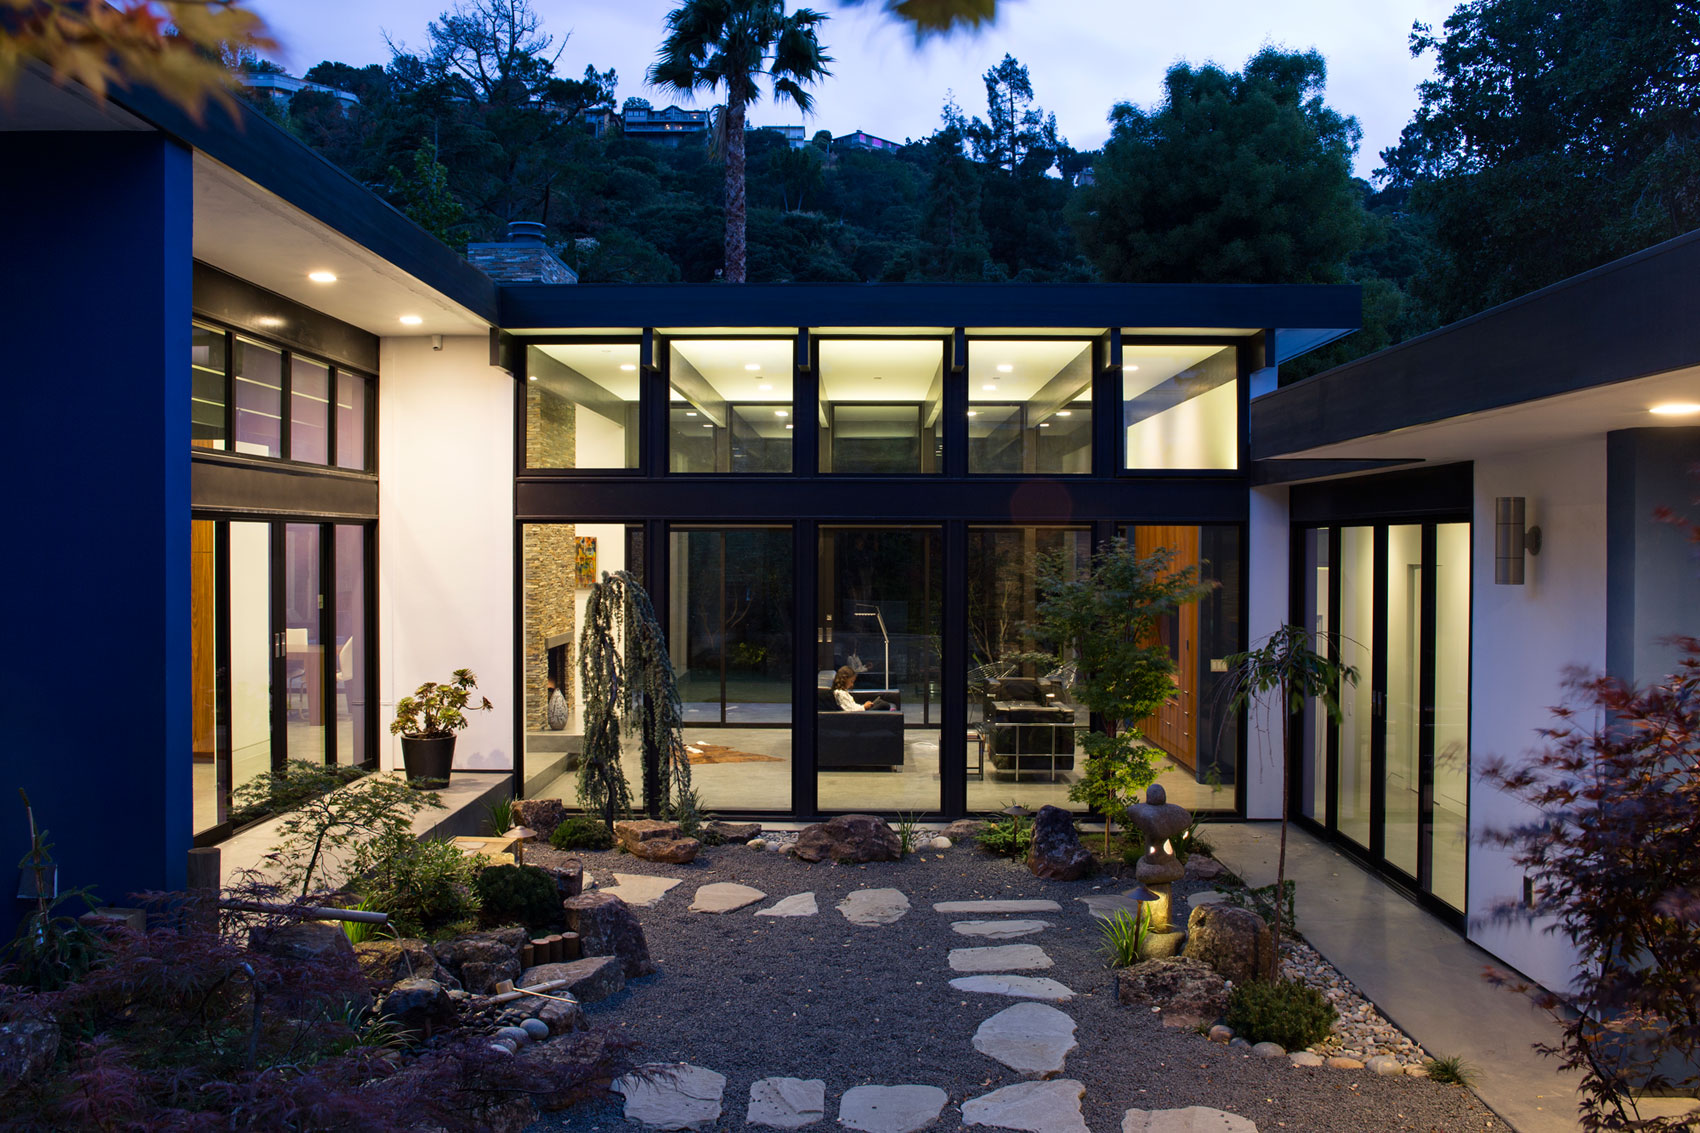 Home Design Ideas Architecture: Atrium House, A Mid-century Architecture Residence By